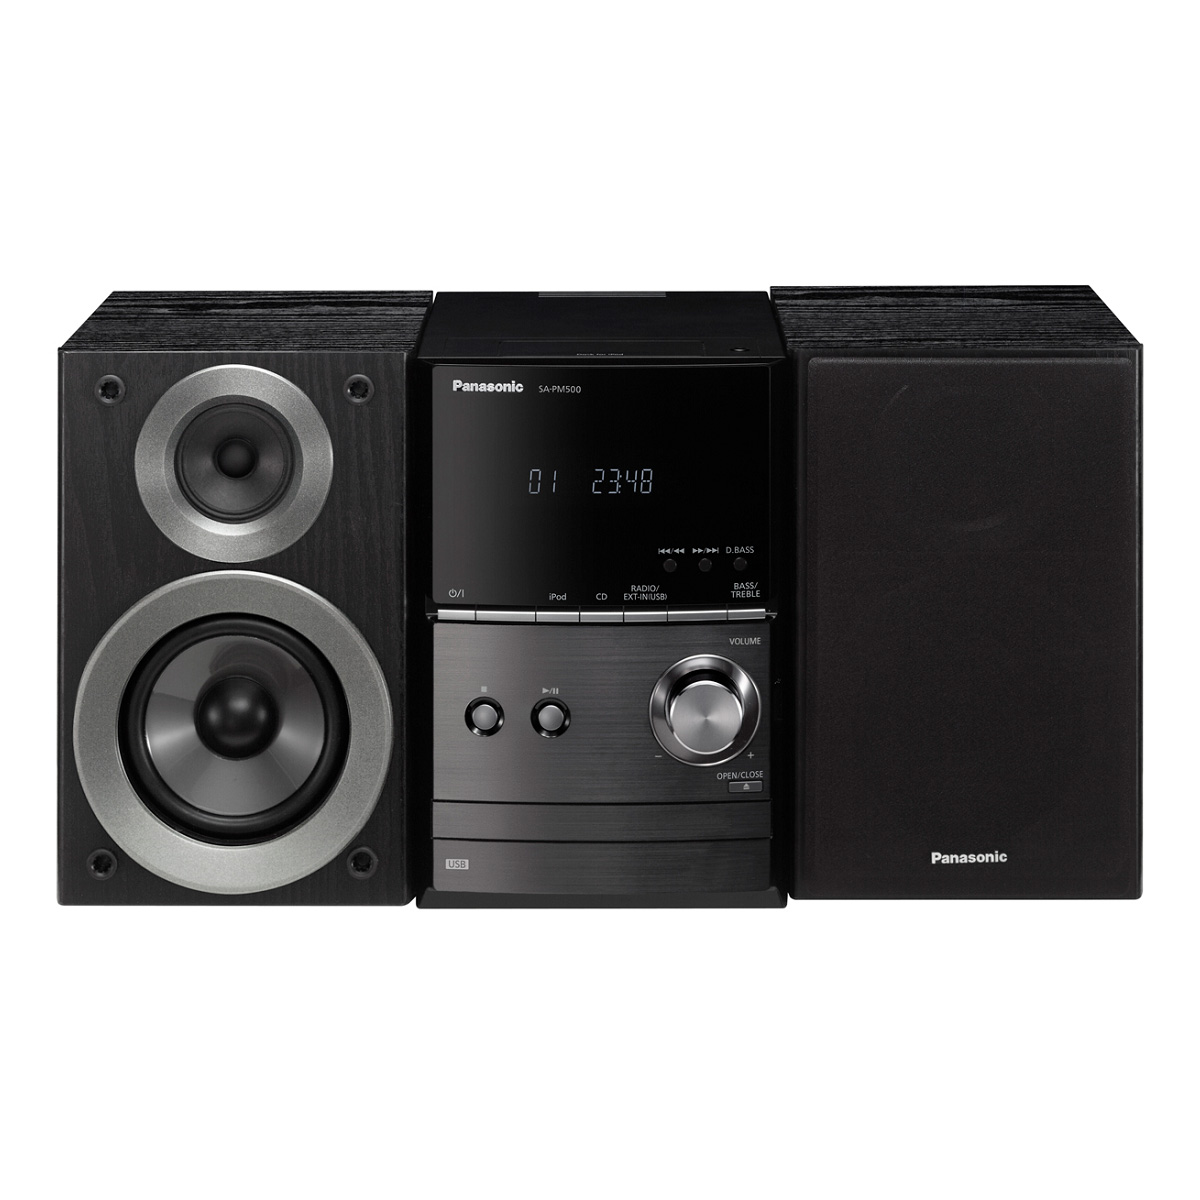 Panasonic Audio SC-PM500